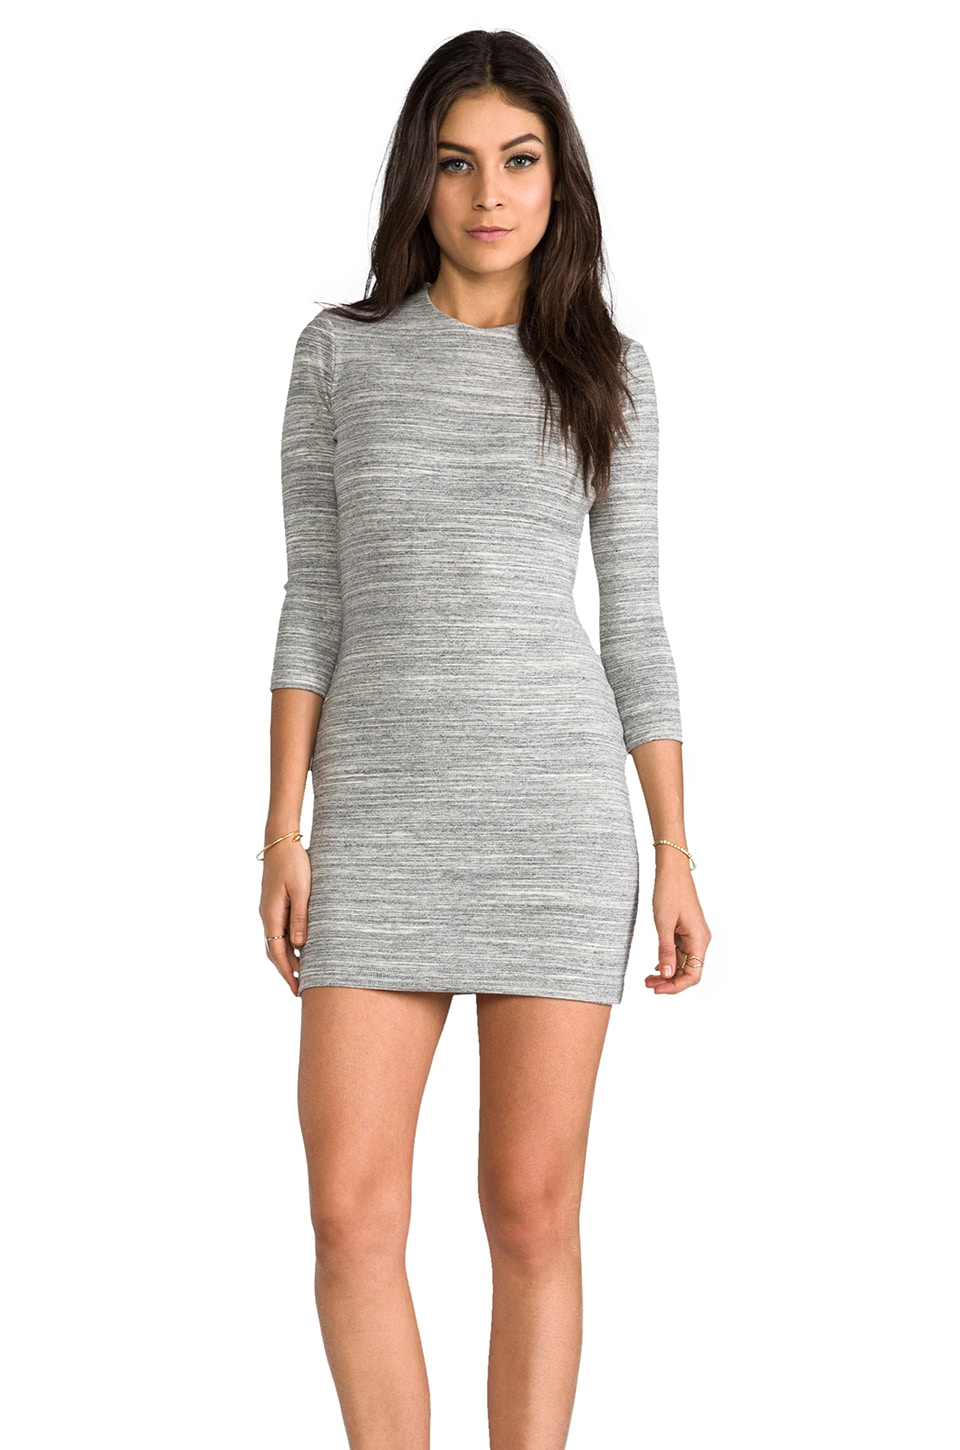 sen Paulina Dress in Heather Grey Stripe